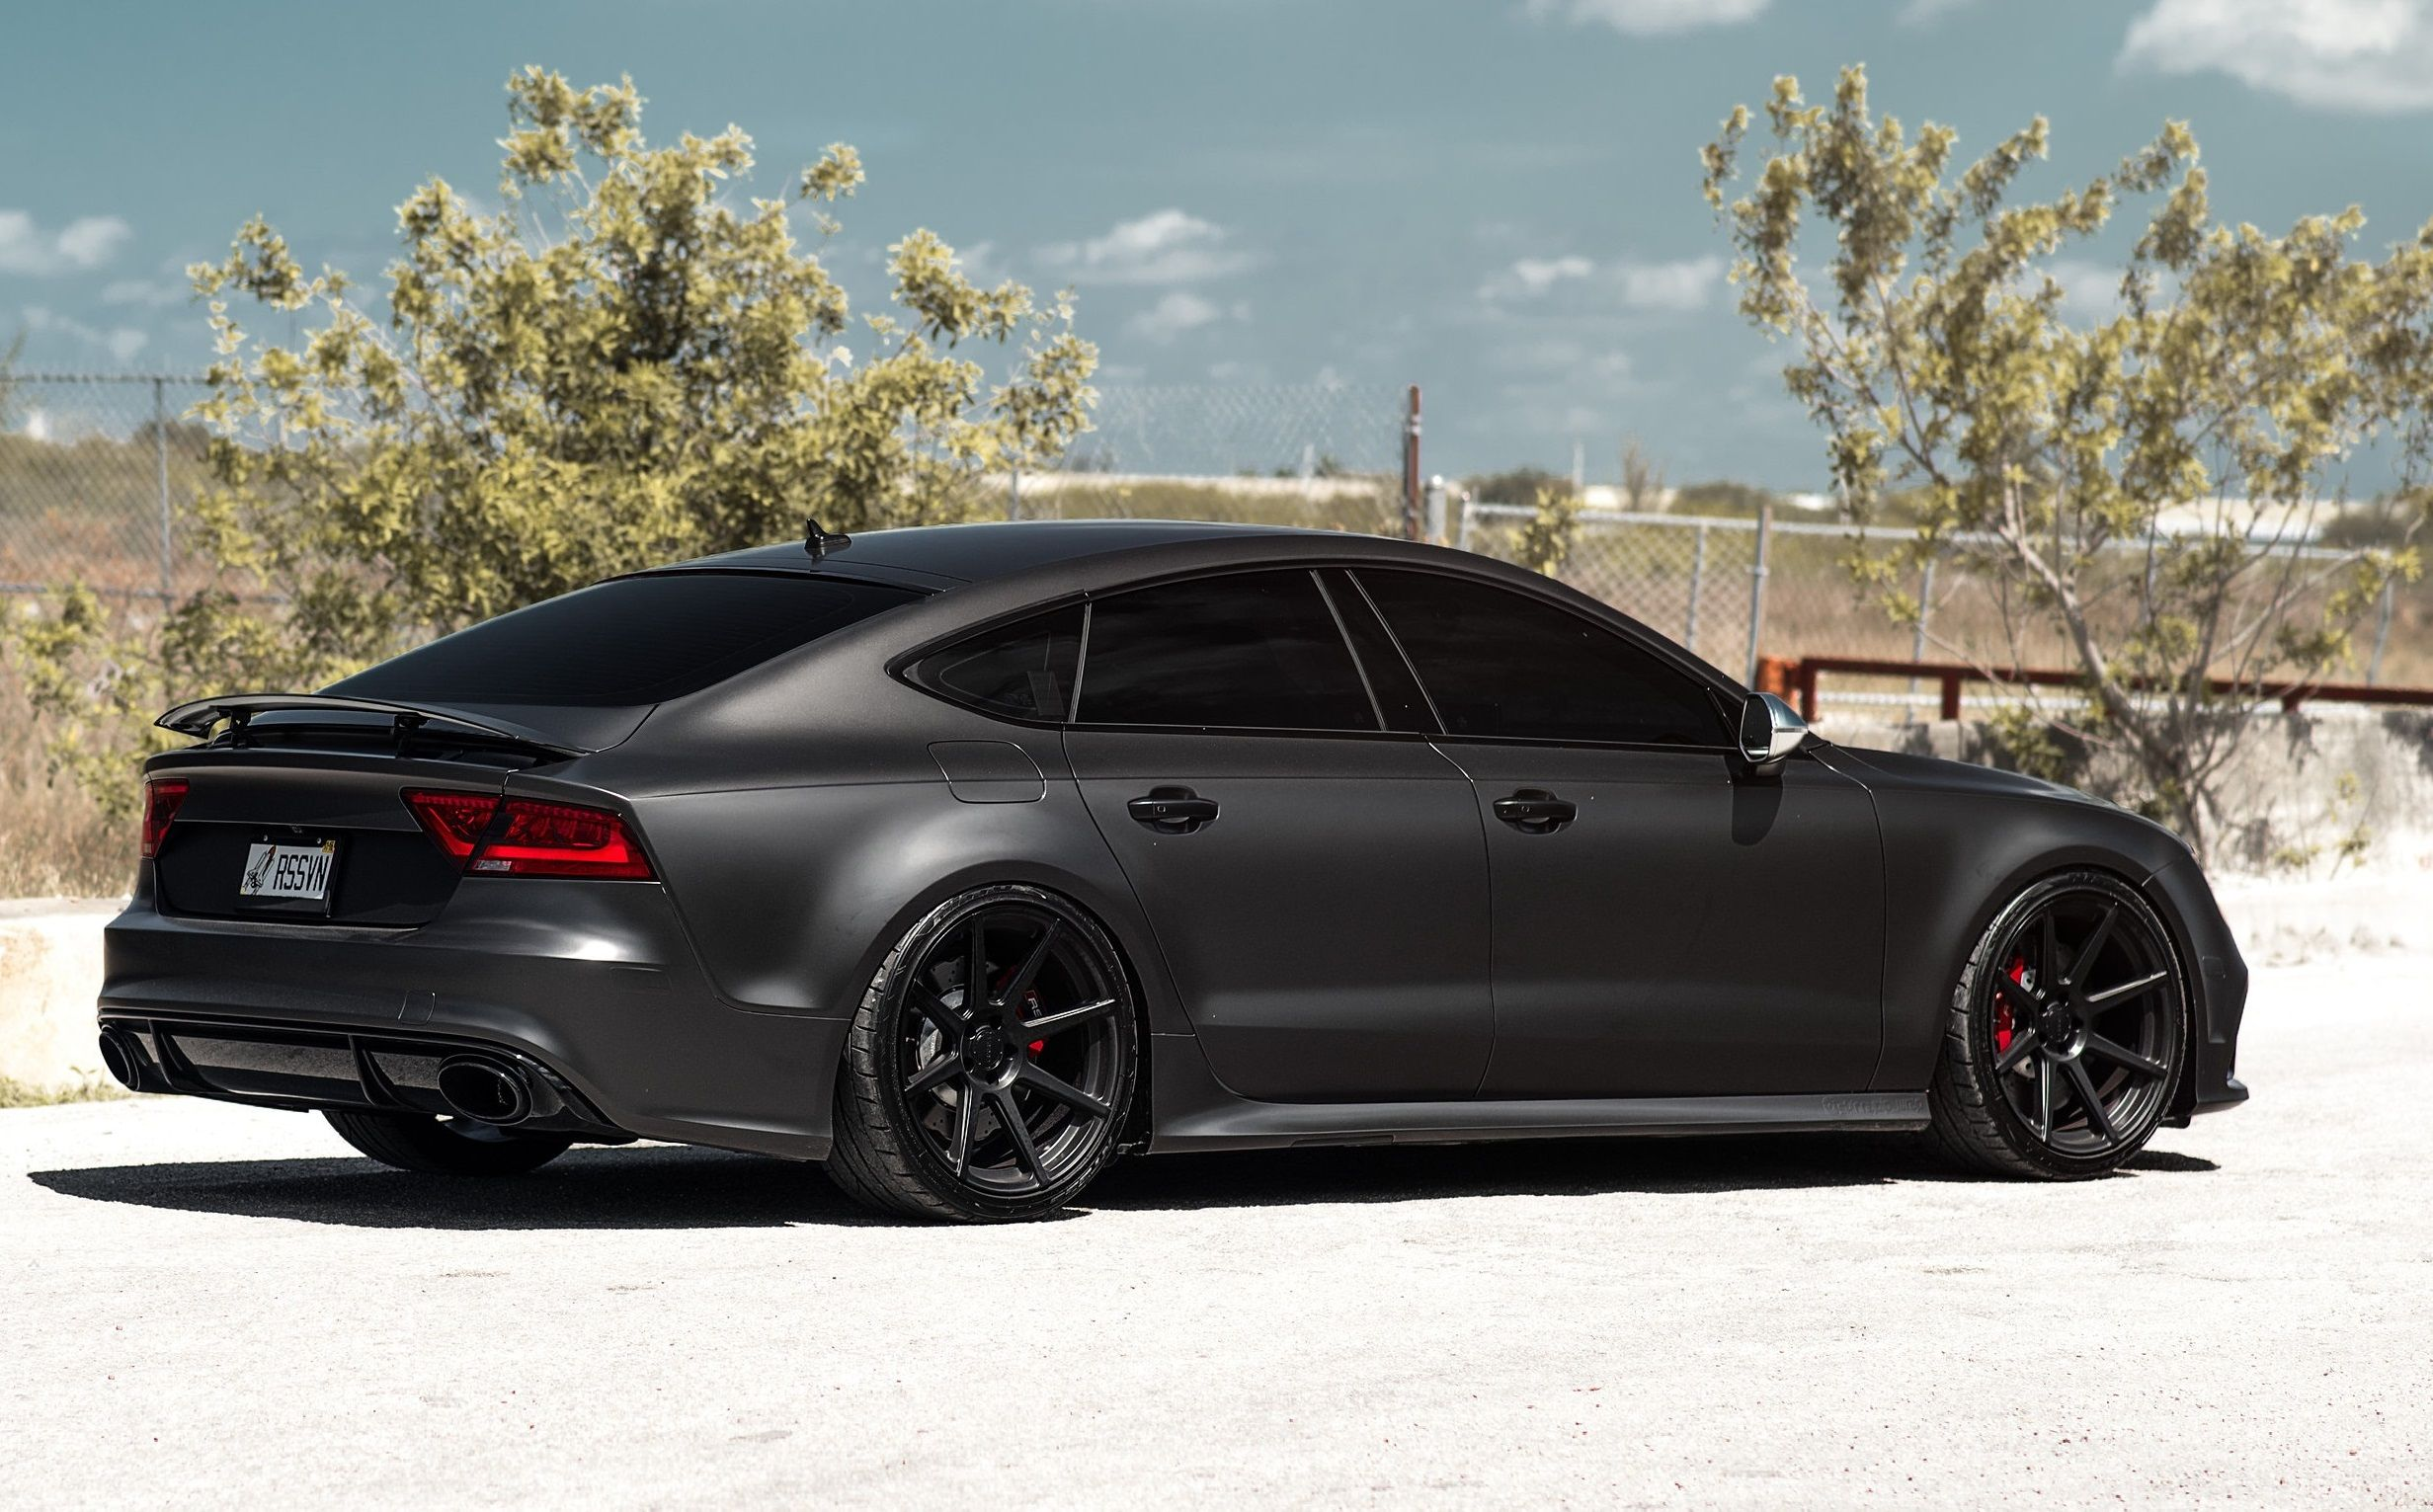 Matt Black Audi Rs7 On Velgen Wheels Audi Audi Rs7 Black Audi